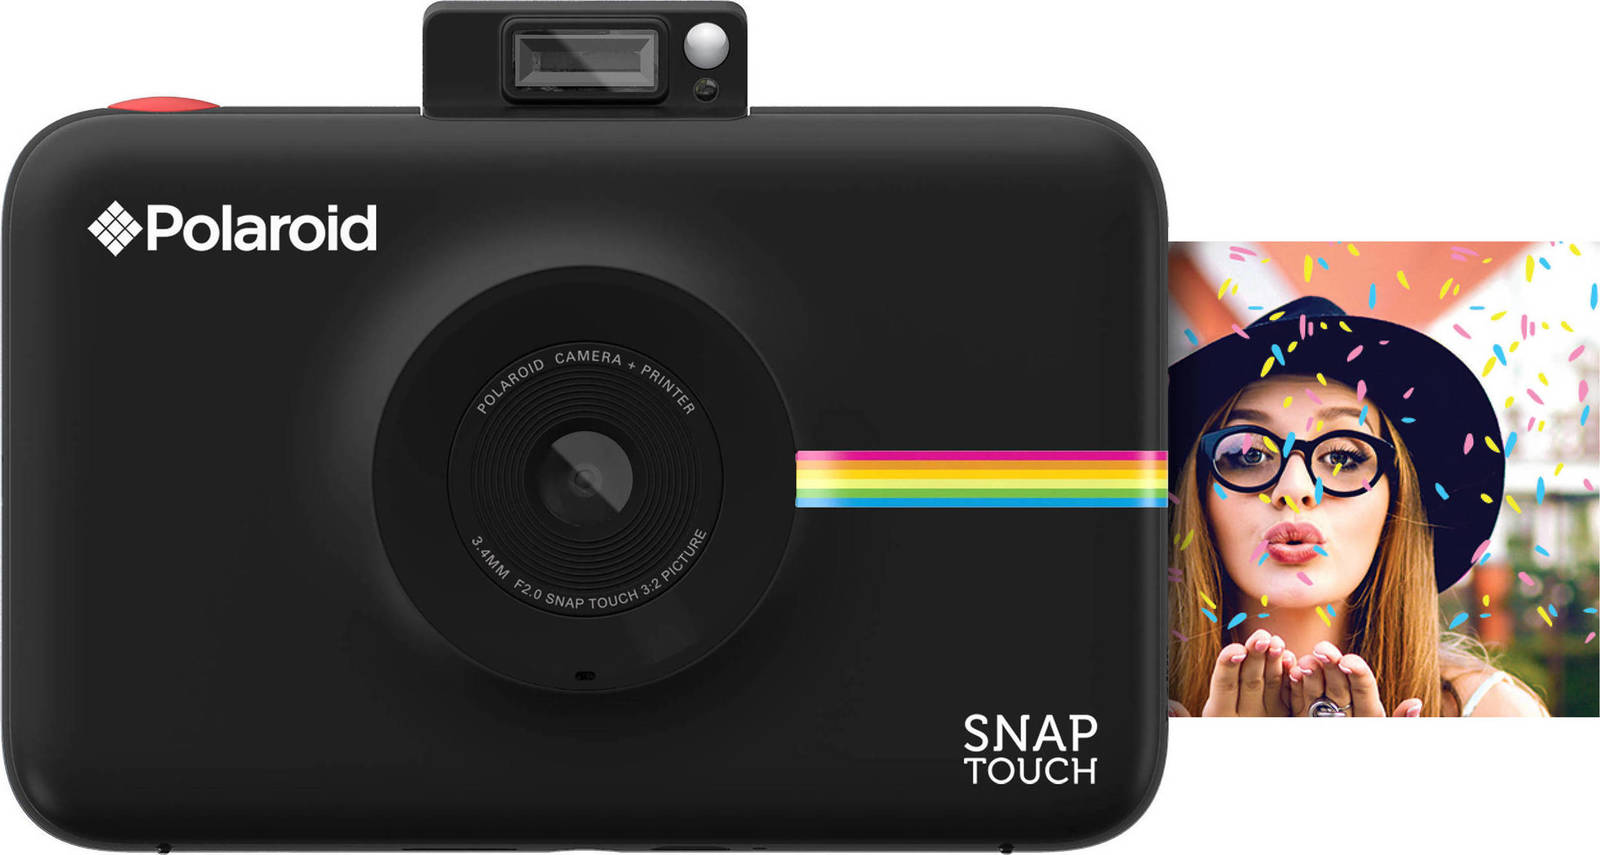 Polaroid Snap Touch Instant Camera Black Πληρωμή έως 24 δόσεις